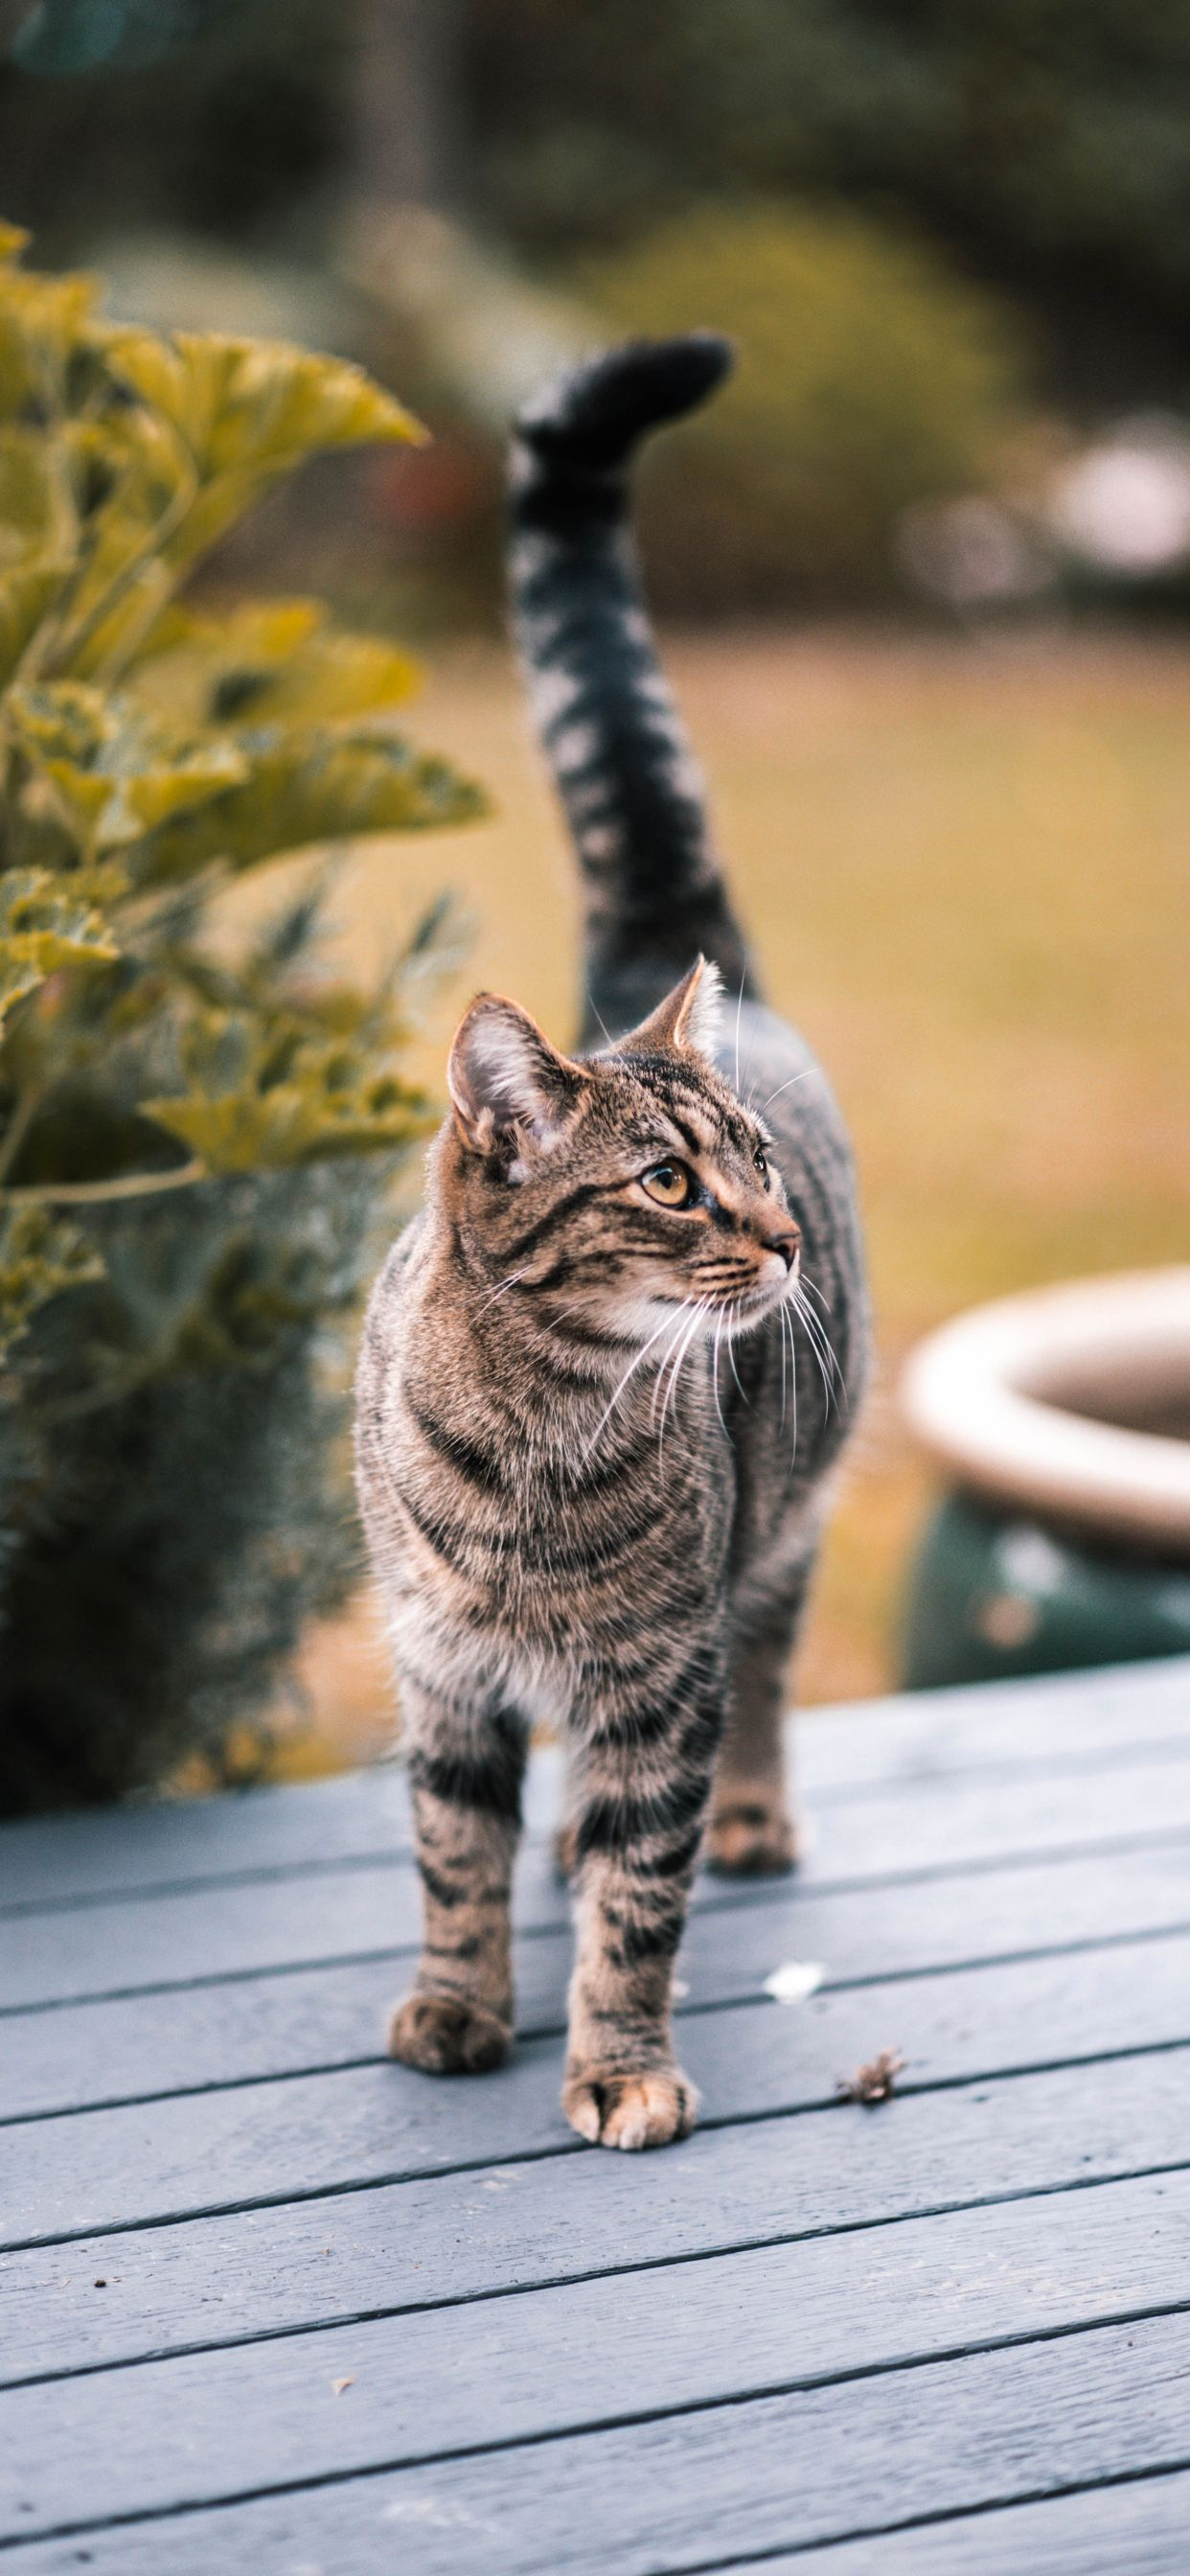 10 Cute Cat Wallpapers For Iphone Xr Iphone Xs Iphone Xs Max